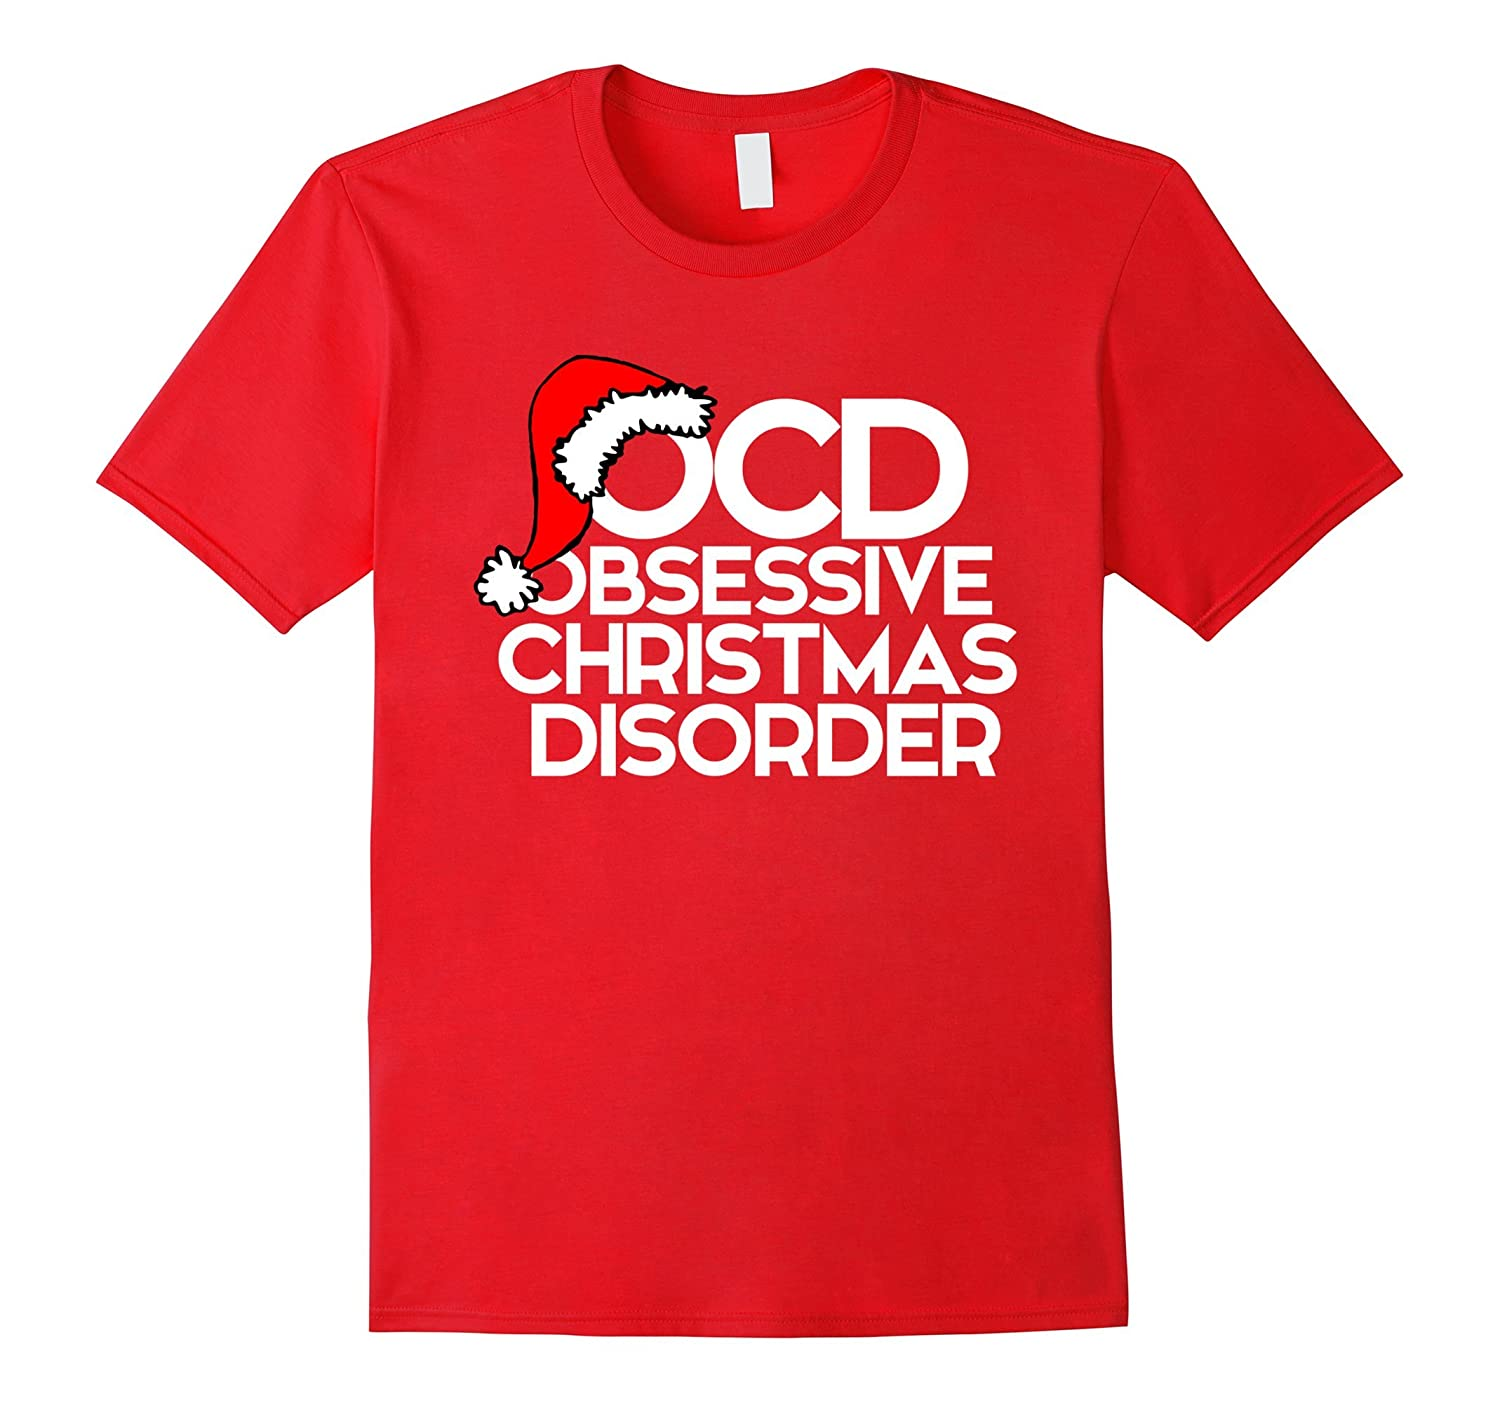 OCD Obsessive Christmas Disorder shirt for xmas party-ANZ